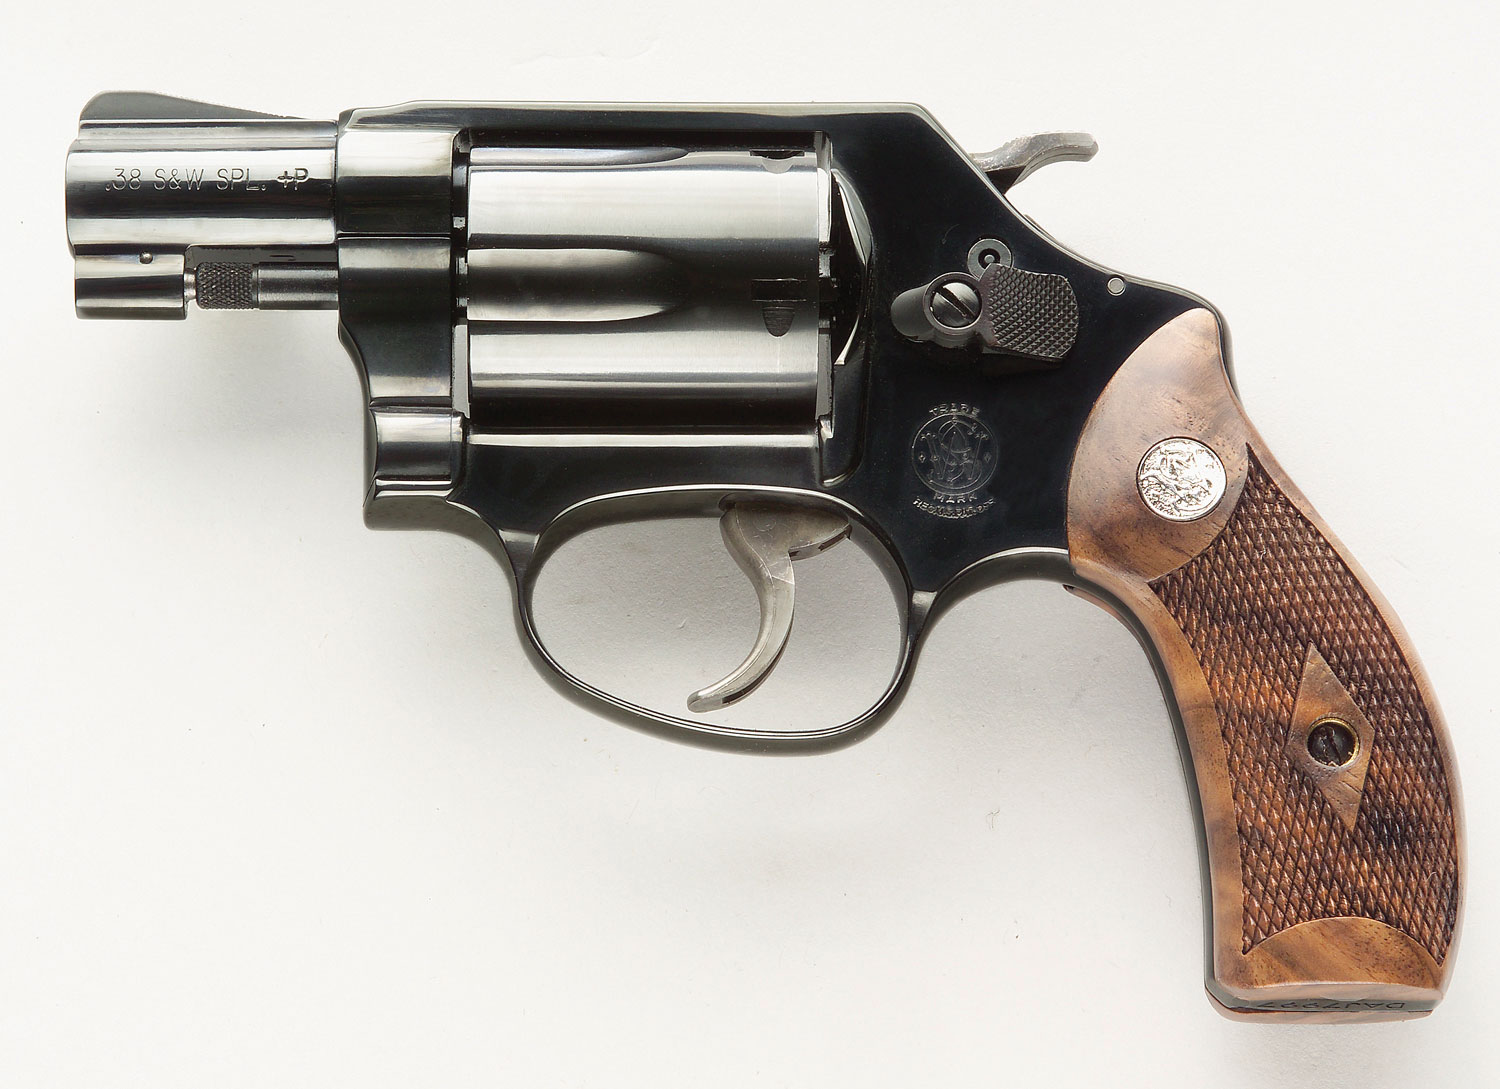 Suggestion for grips for S&W model 36 snub-model36chiefsspecial.jpg